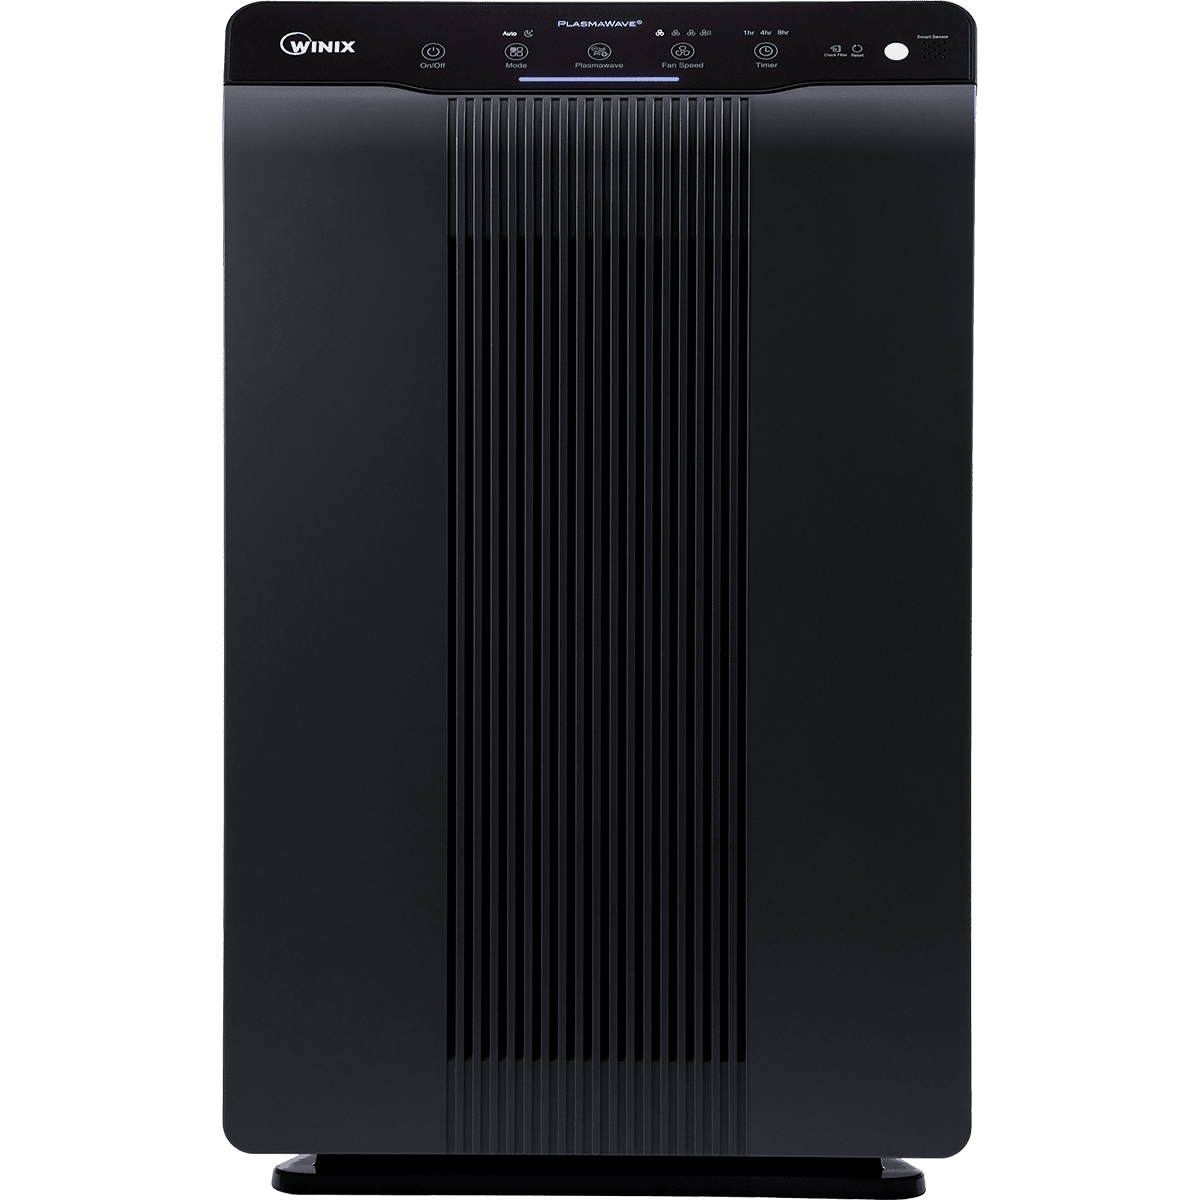 Winix Plasmawave 5500 2 True Hepa Air Purifier Sylvane